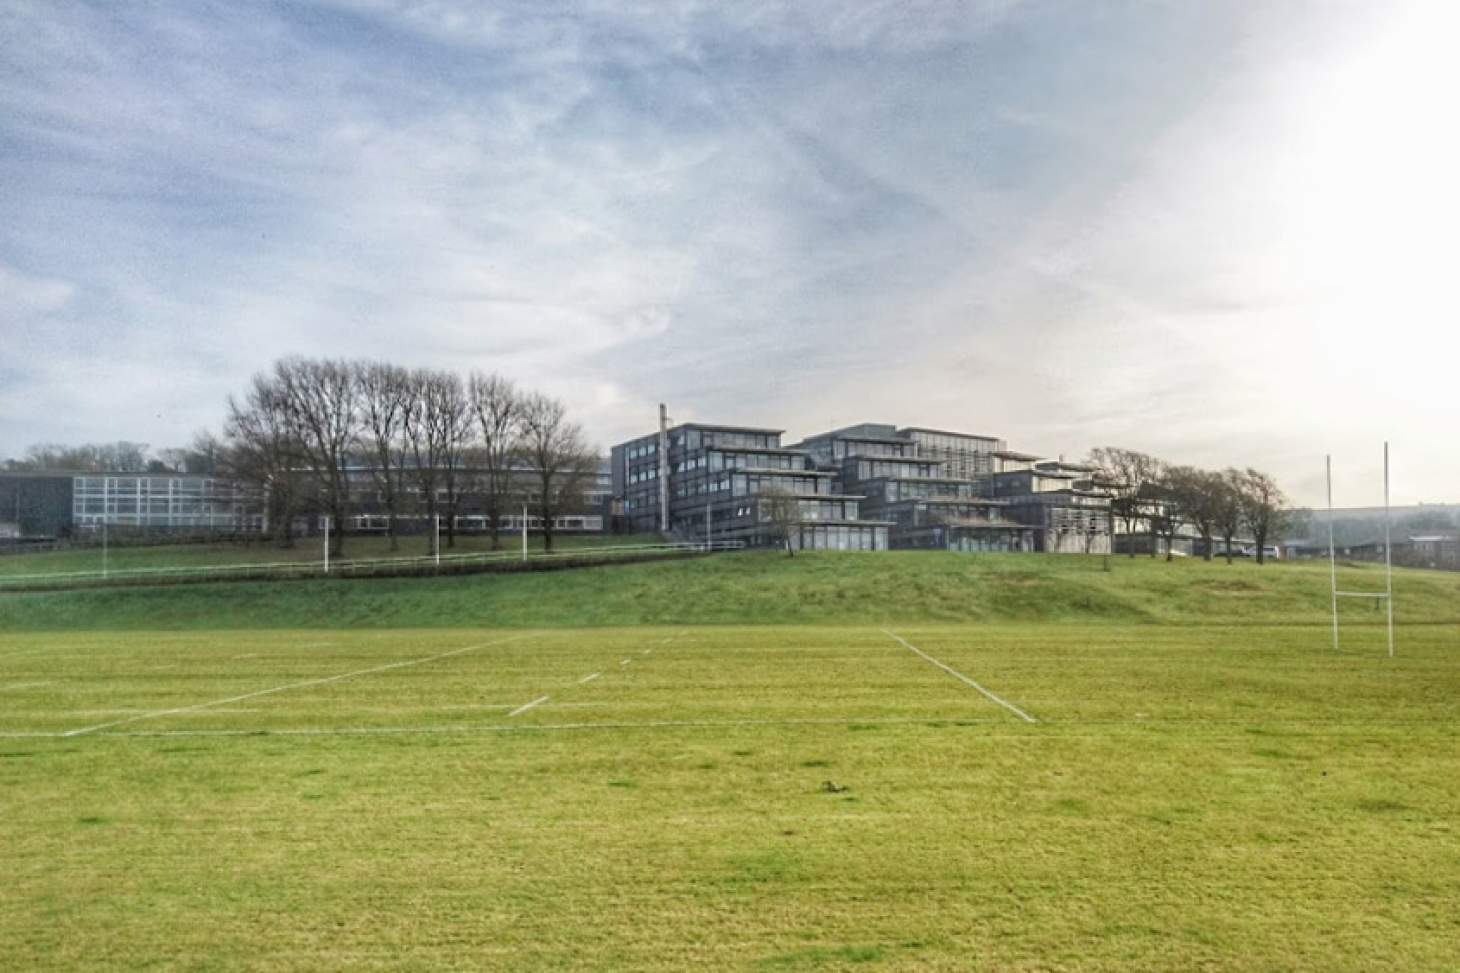 University Of Brighton (Falmer Campus) Union | Grass rugby pitch